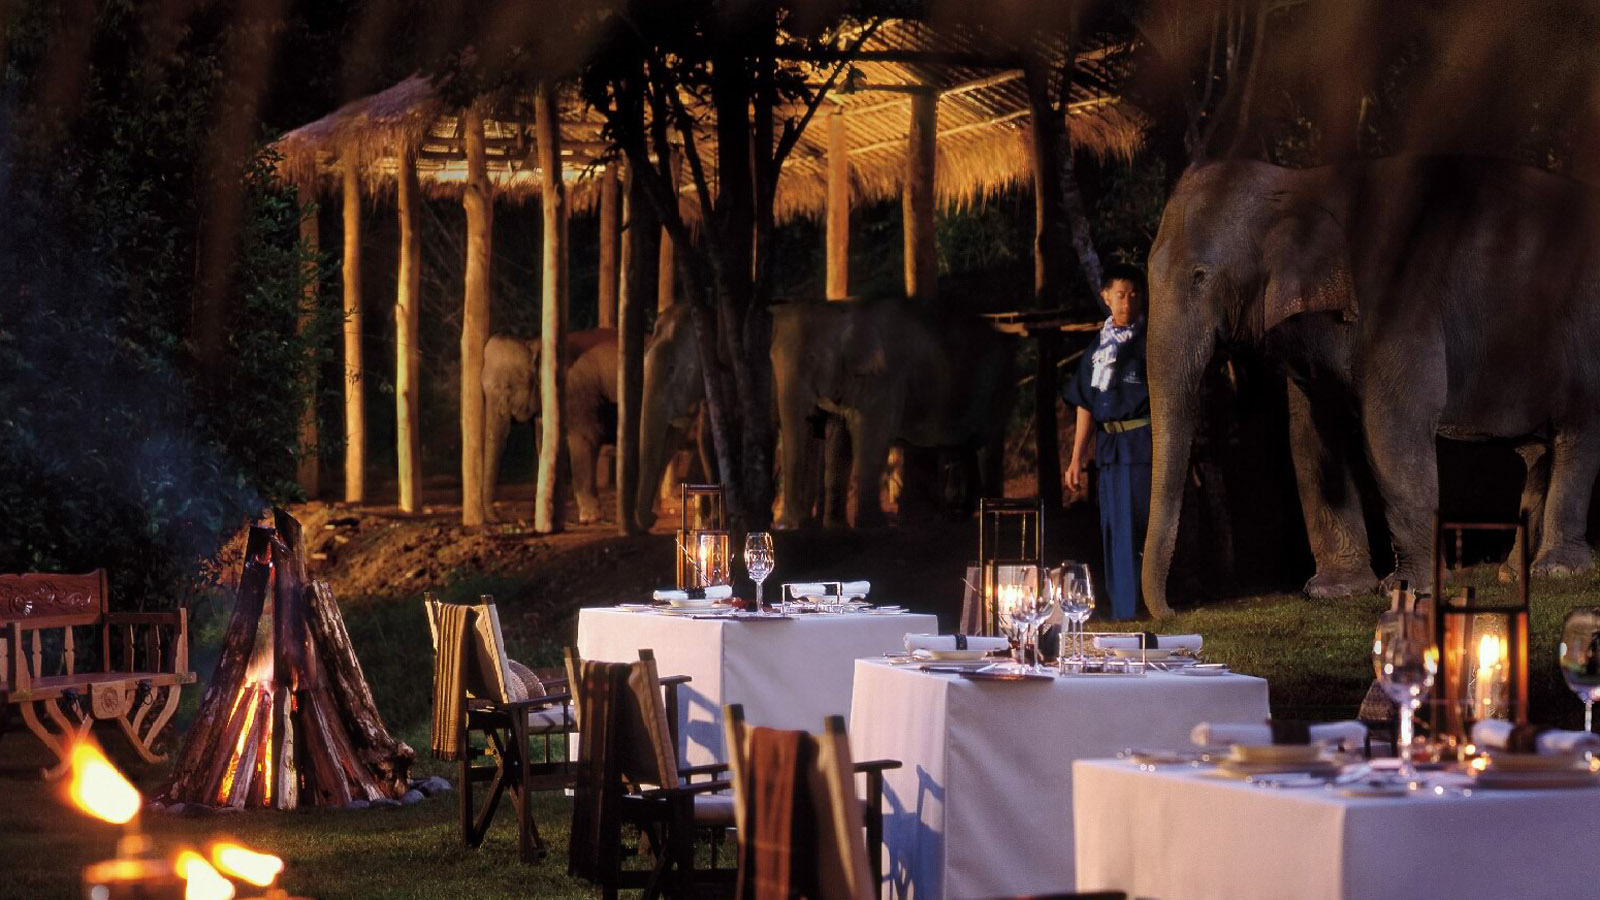 Enjoy Group Value Offer with Our Meetings and Events Package at Four Seasons Tented Camp Golden Triangle